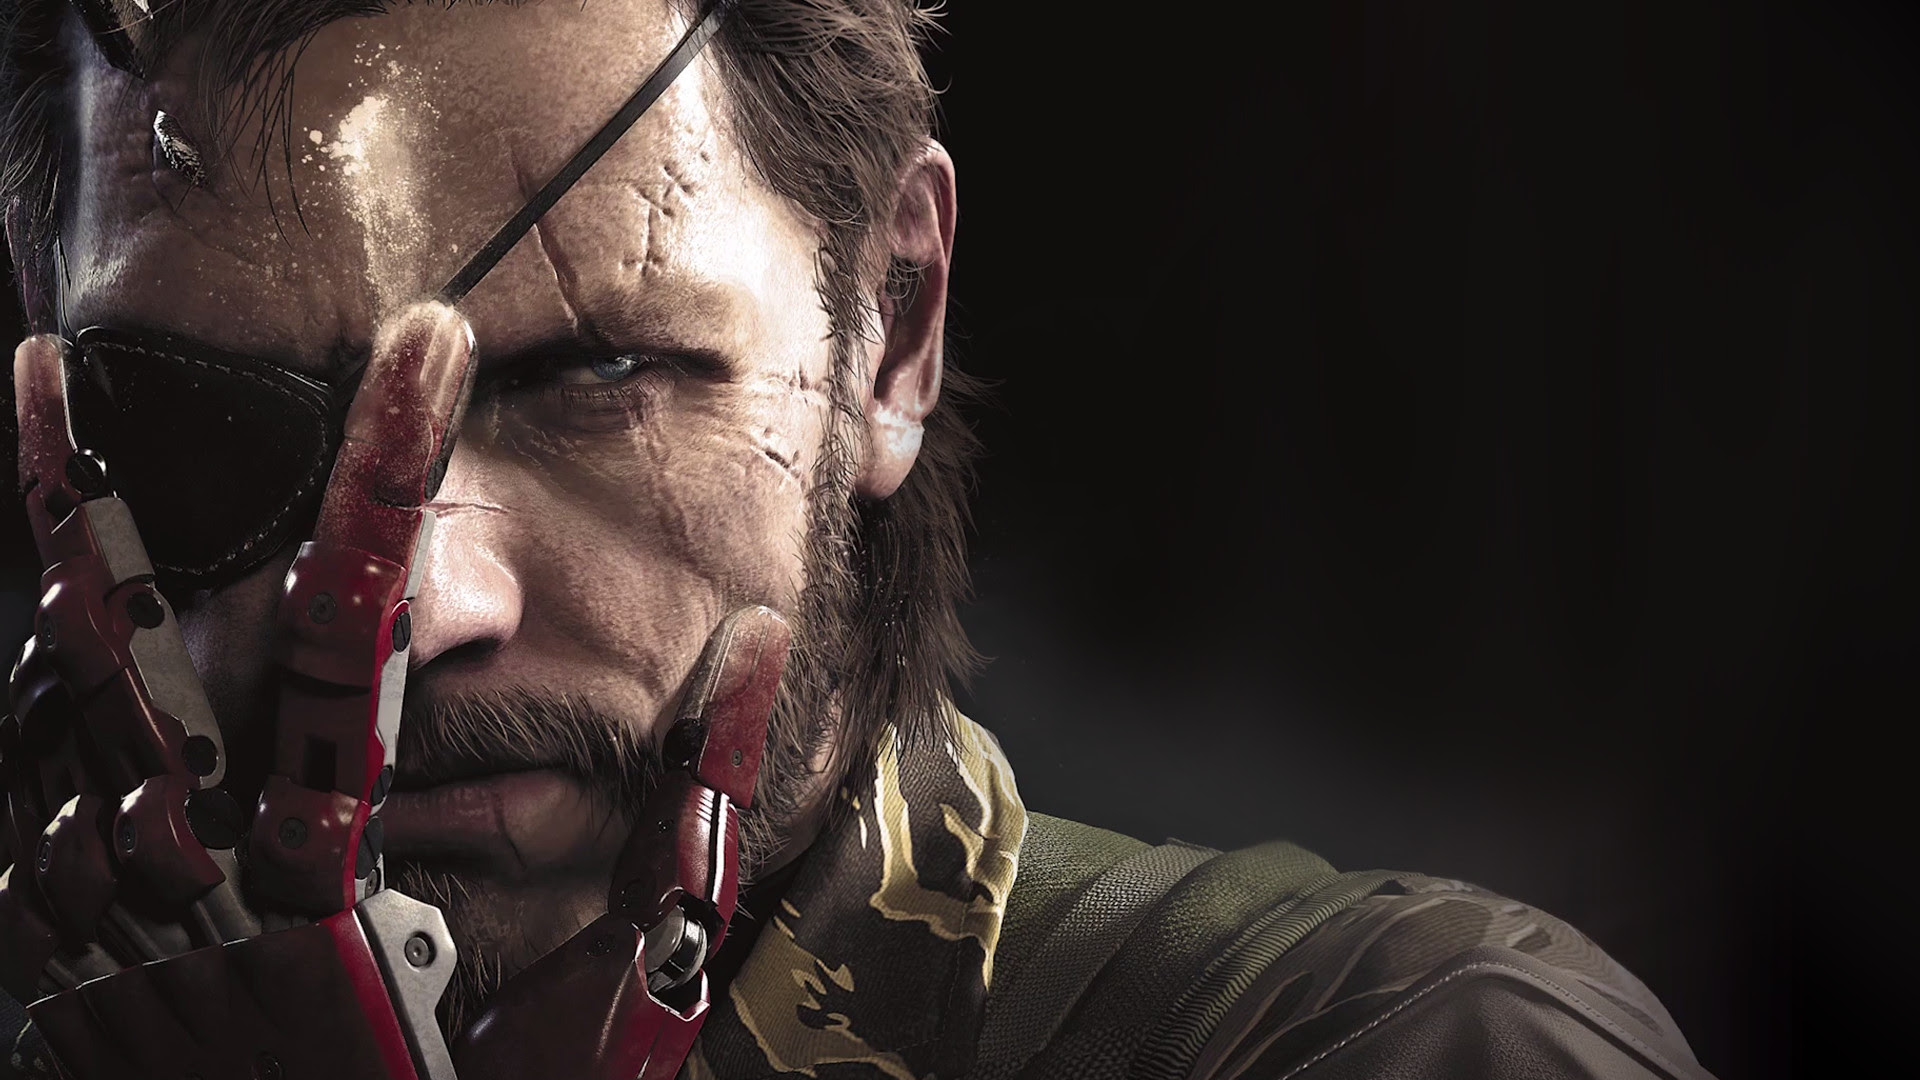 Mgs5 Phantom Pain Wallpapers 91 Images